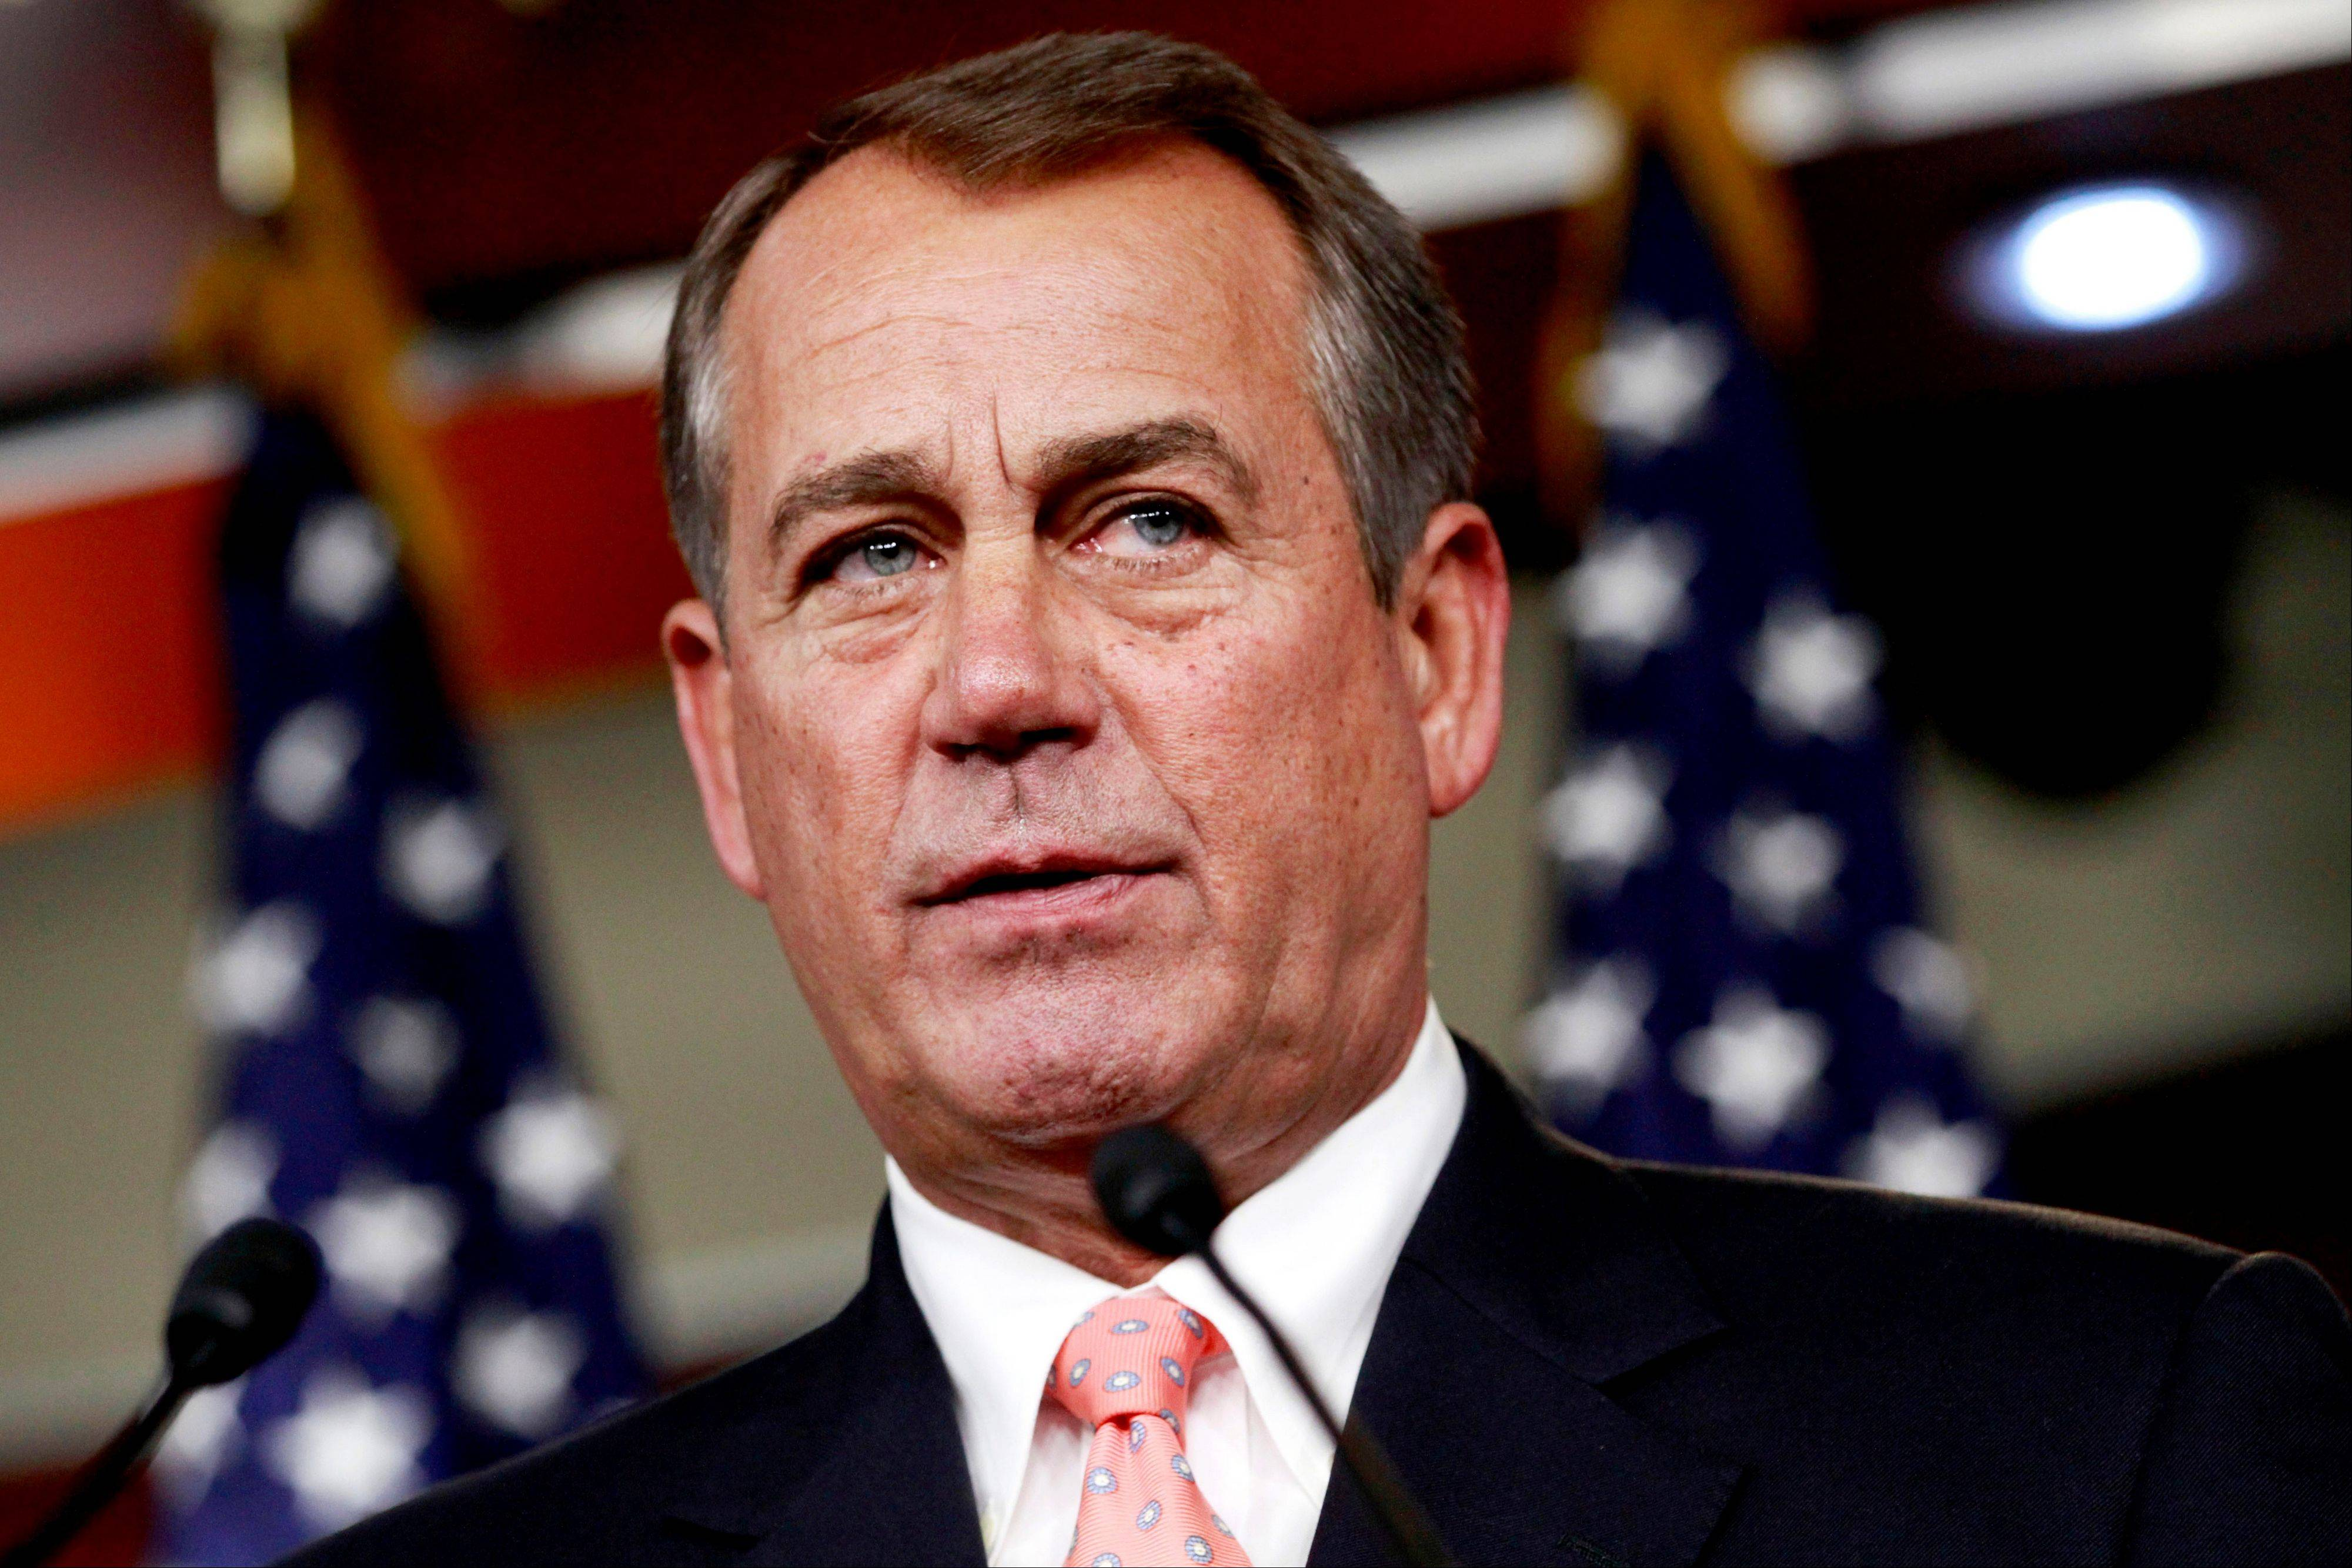 House Speaker John Boehner during his weekly news conference on Capitol Hill in Washington last week. Republicans ignored a veto threat and overcame a rebellion by party conservatives to push a bill through the House Friday keeping interest rates on millions of federal student loans from doubling this summer.